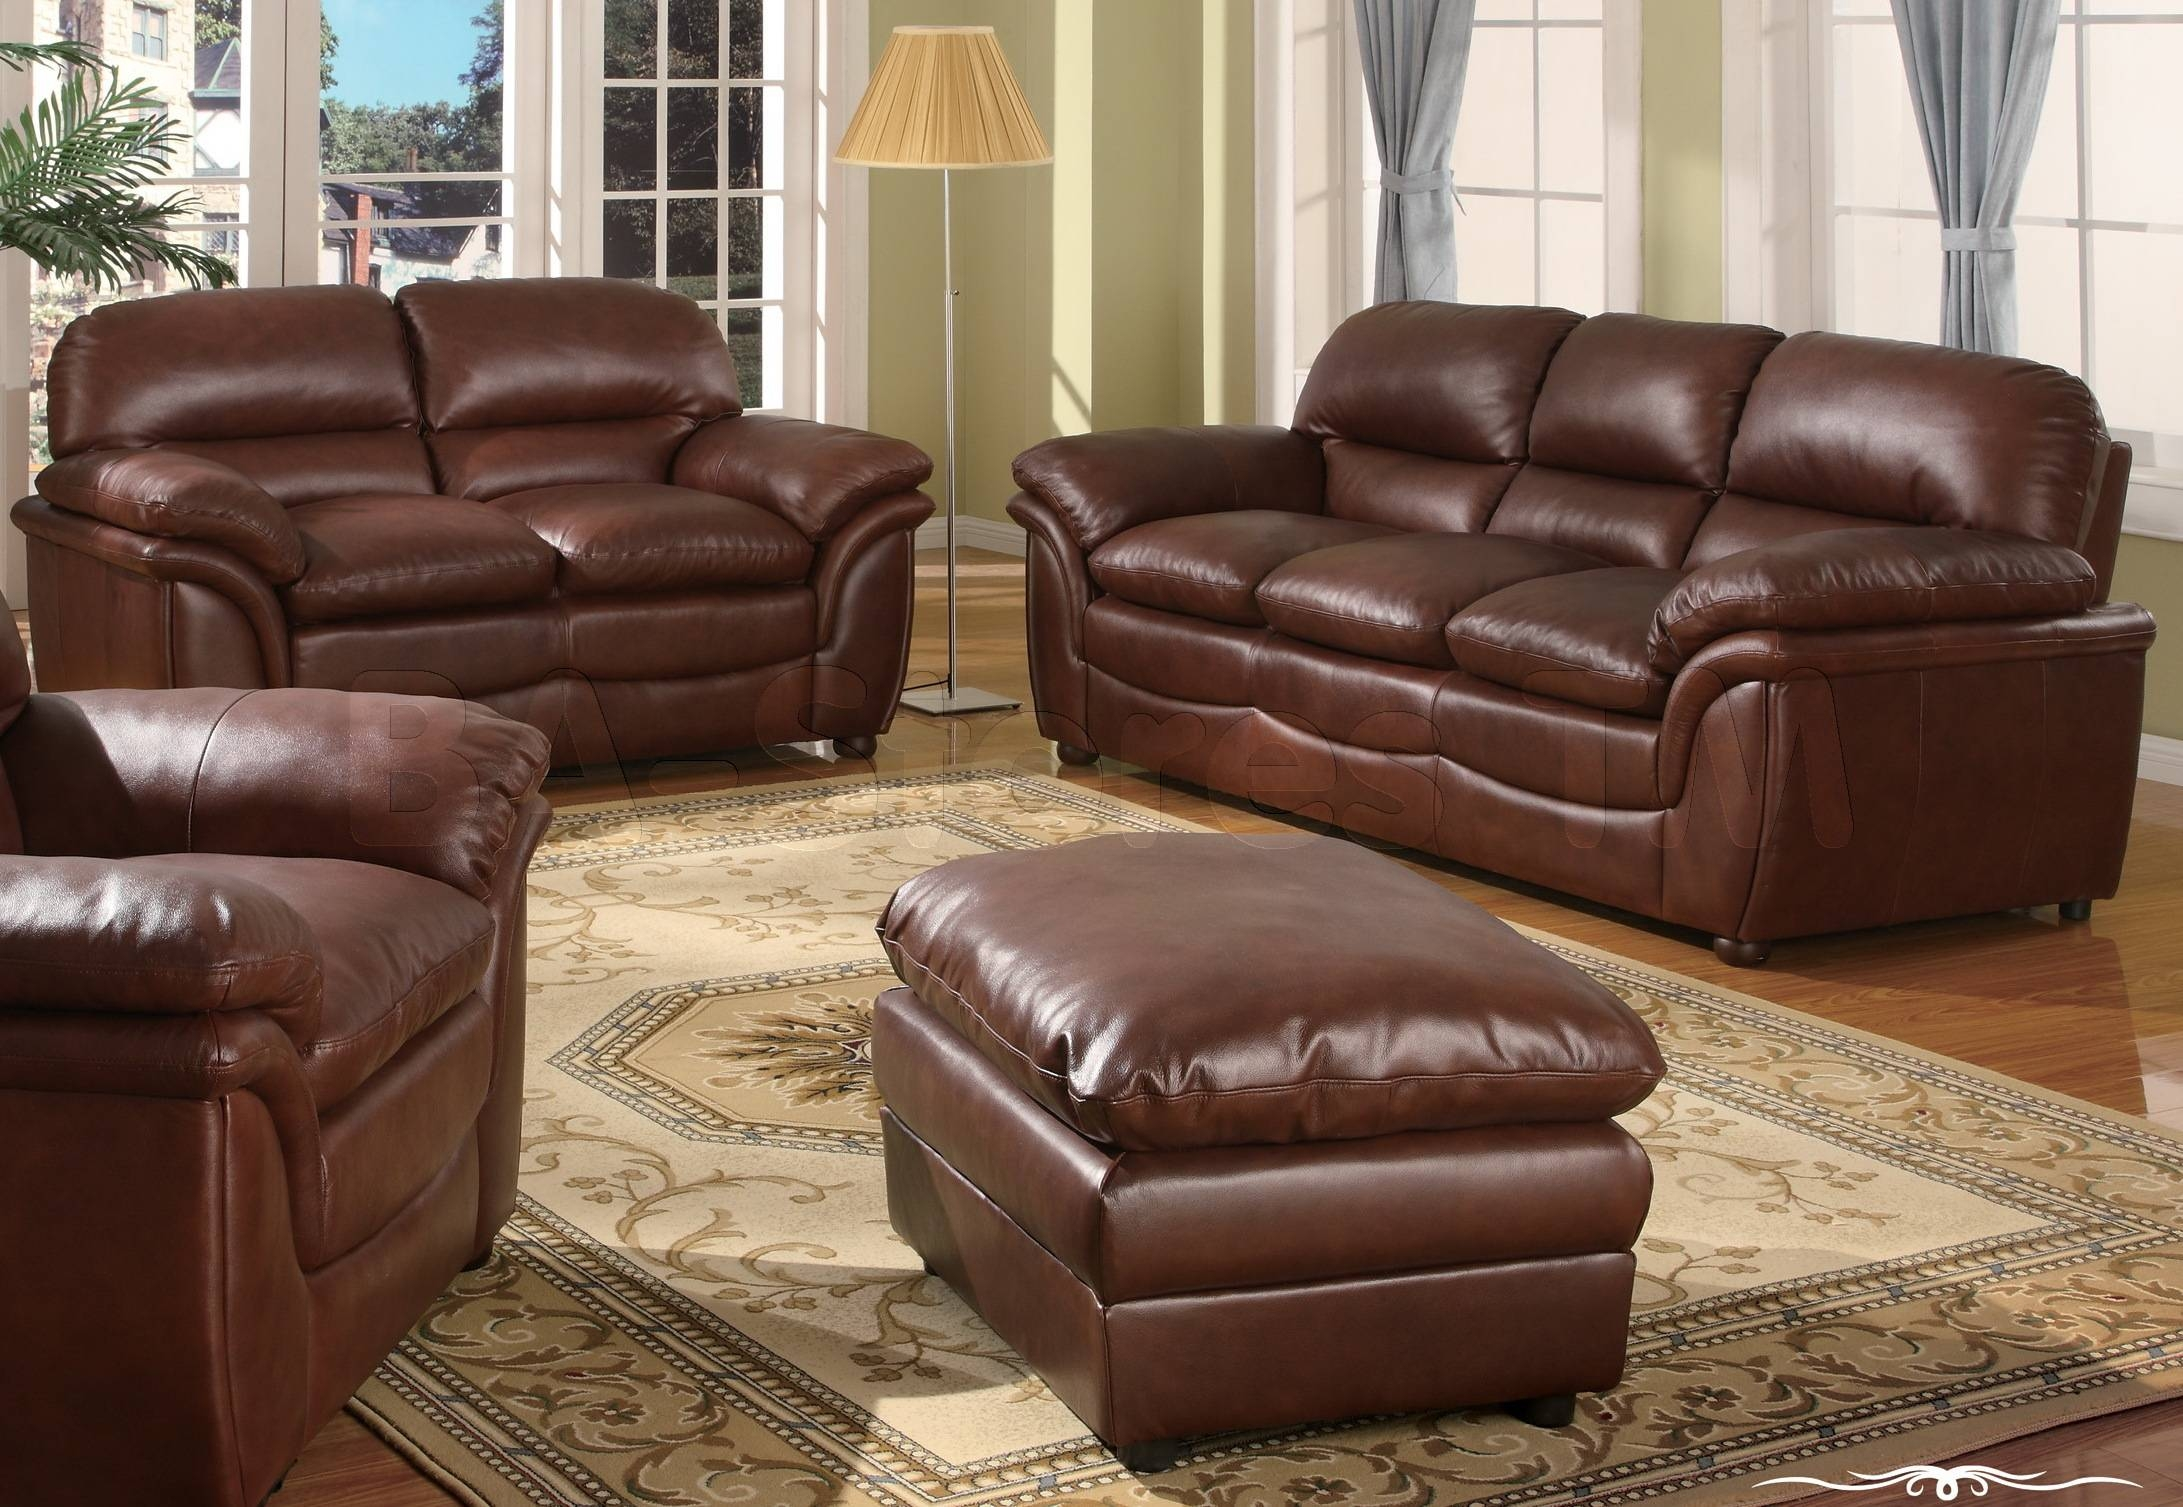 Sofas Center : Distinctive Fabric Sofa Set Hd Classic Sets in Comfortable Sofas And Chairs (Image 24 of 30)